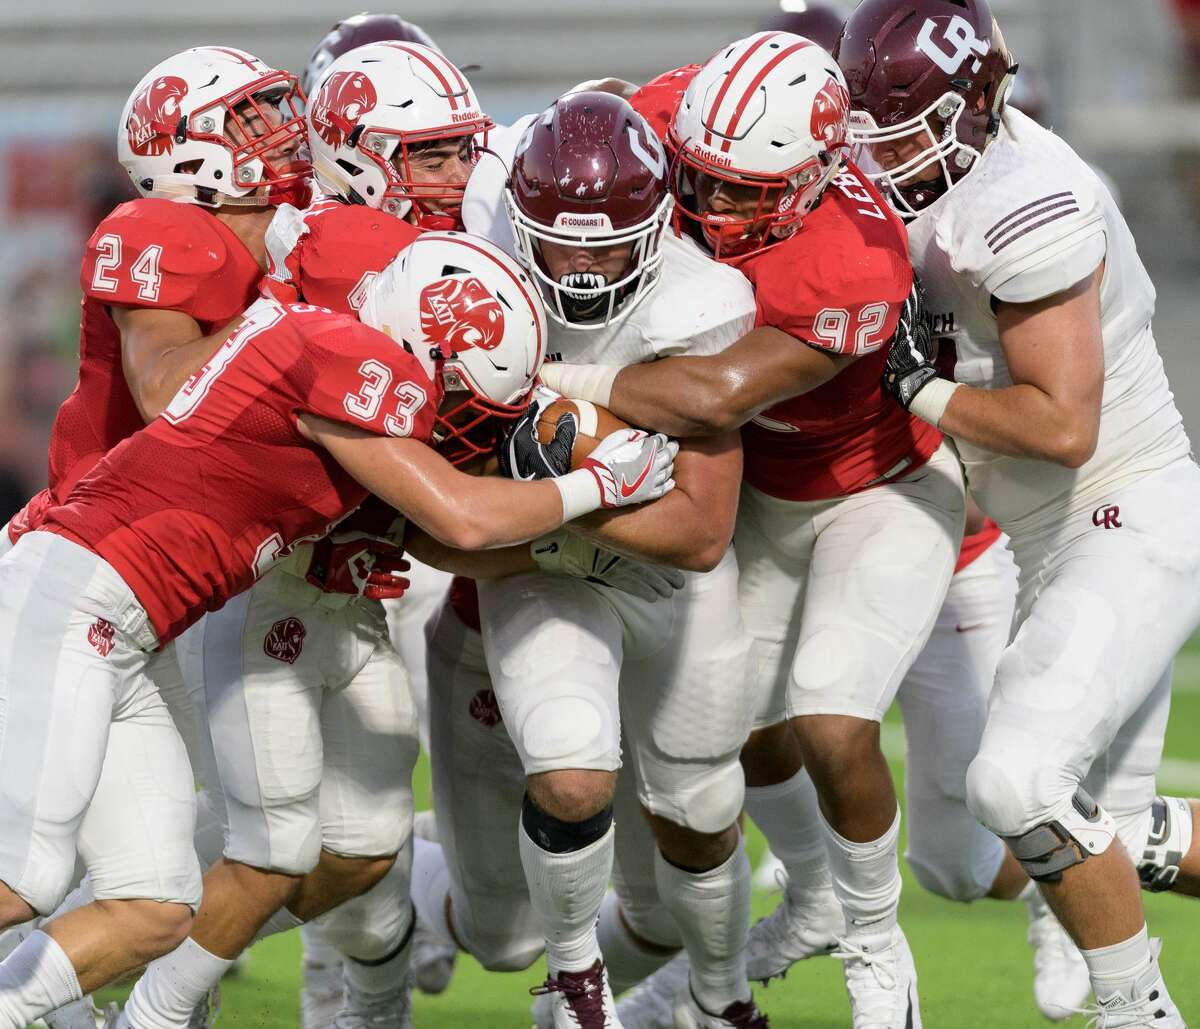 Brant Kuithe (14) of the Cinco Ranch Cougars is brought down for a short gain by Neil Solis (33) and Jonah Lebischal (92) of the Katy Tigers in the first half of a high school football game on Friday, September 22, 2017 at Legacy Stadium in Katy Texas.